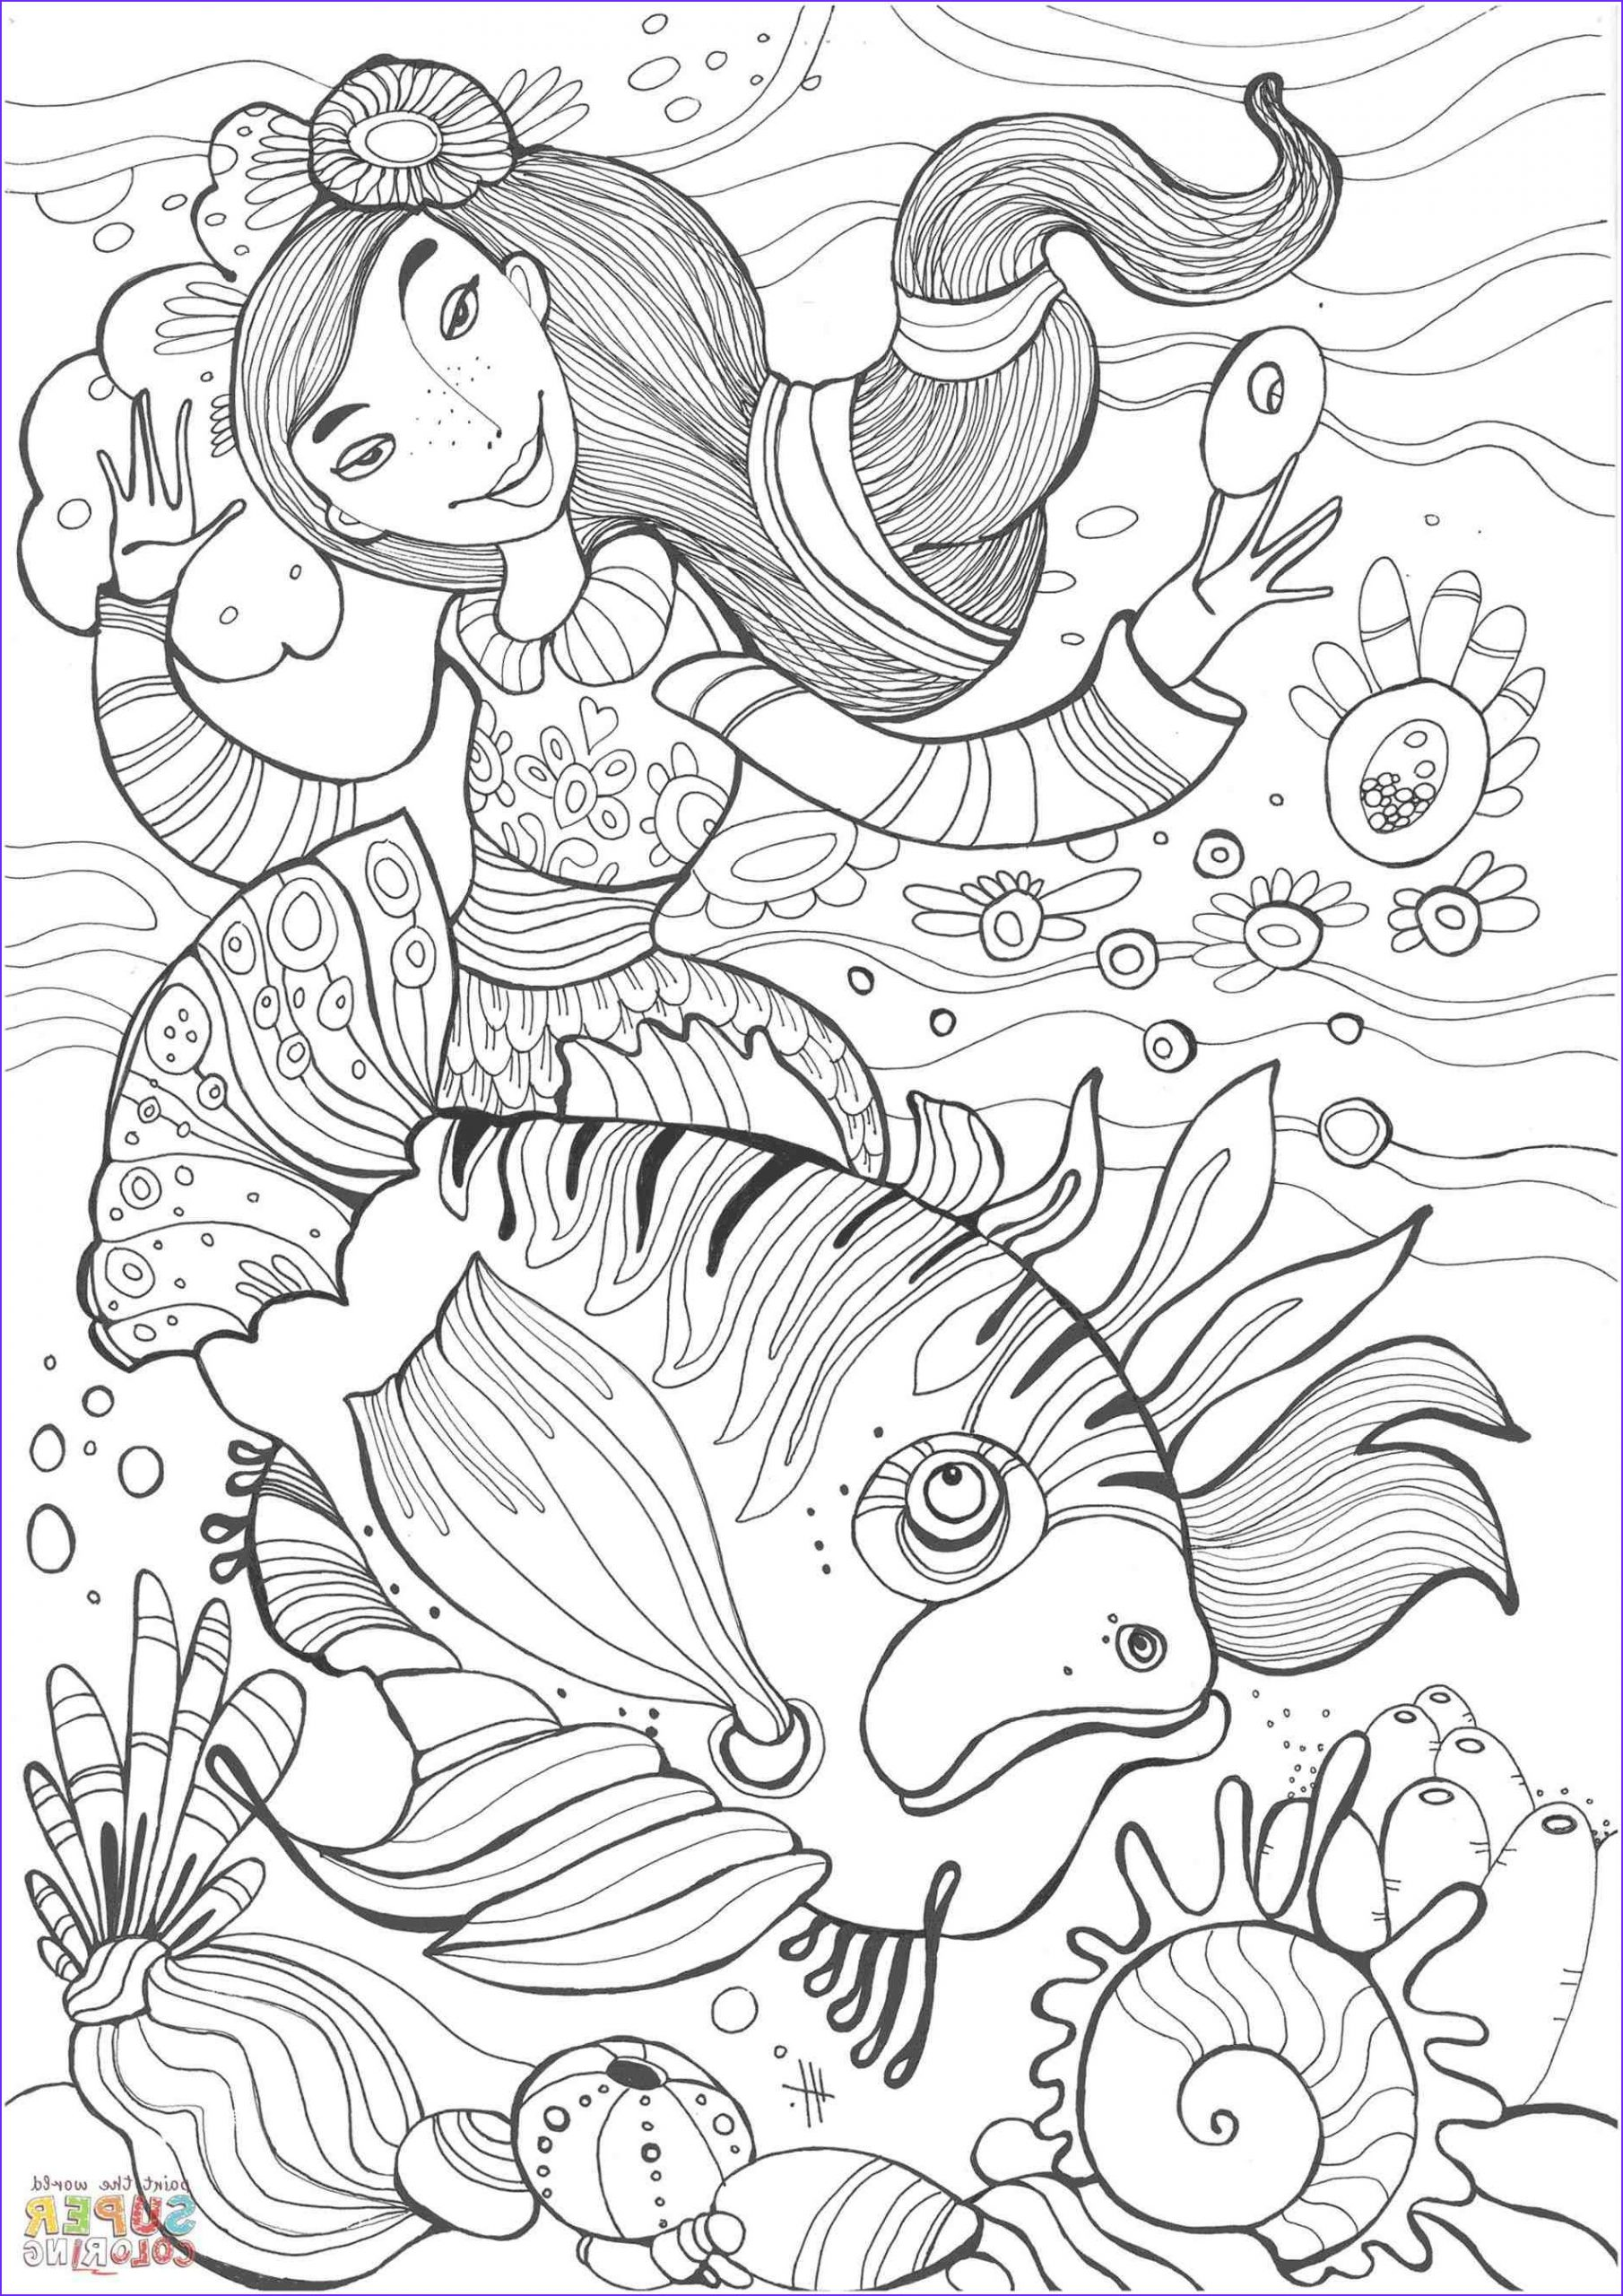 Mythical Mermaids Coloring Book Beautiful Photos Advanced Mermaid Coloring Pages at Getdrawings